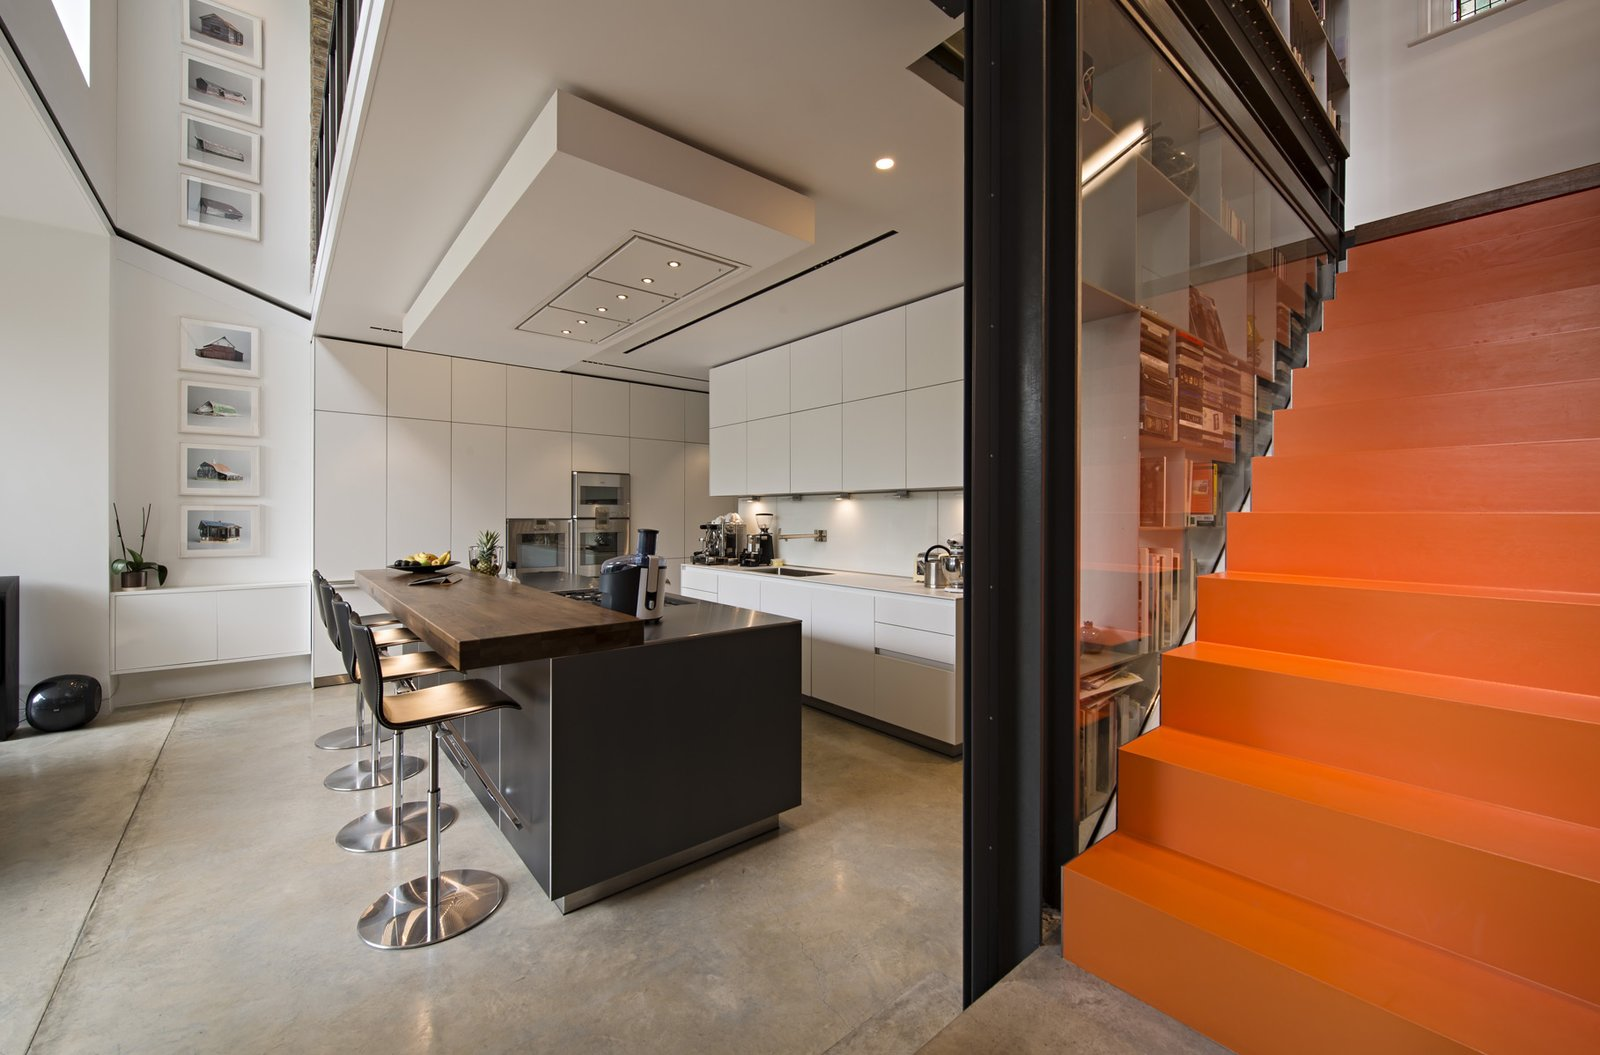 The stairs roll out into the kitchen and dining areas. The individual steps are steel trays dipped in orange liquid rubber, to squeaky effect.  190+ Best Modern Staircase Ideas from This Dramatic London Renovation Boasts a Five-Story Bookcase